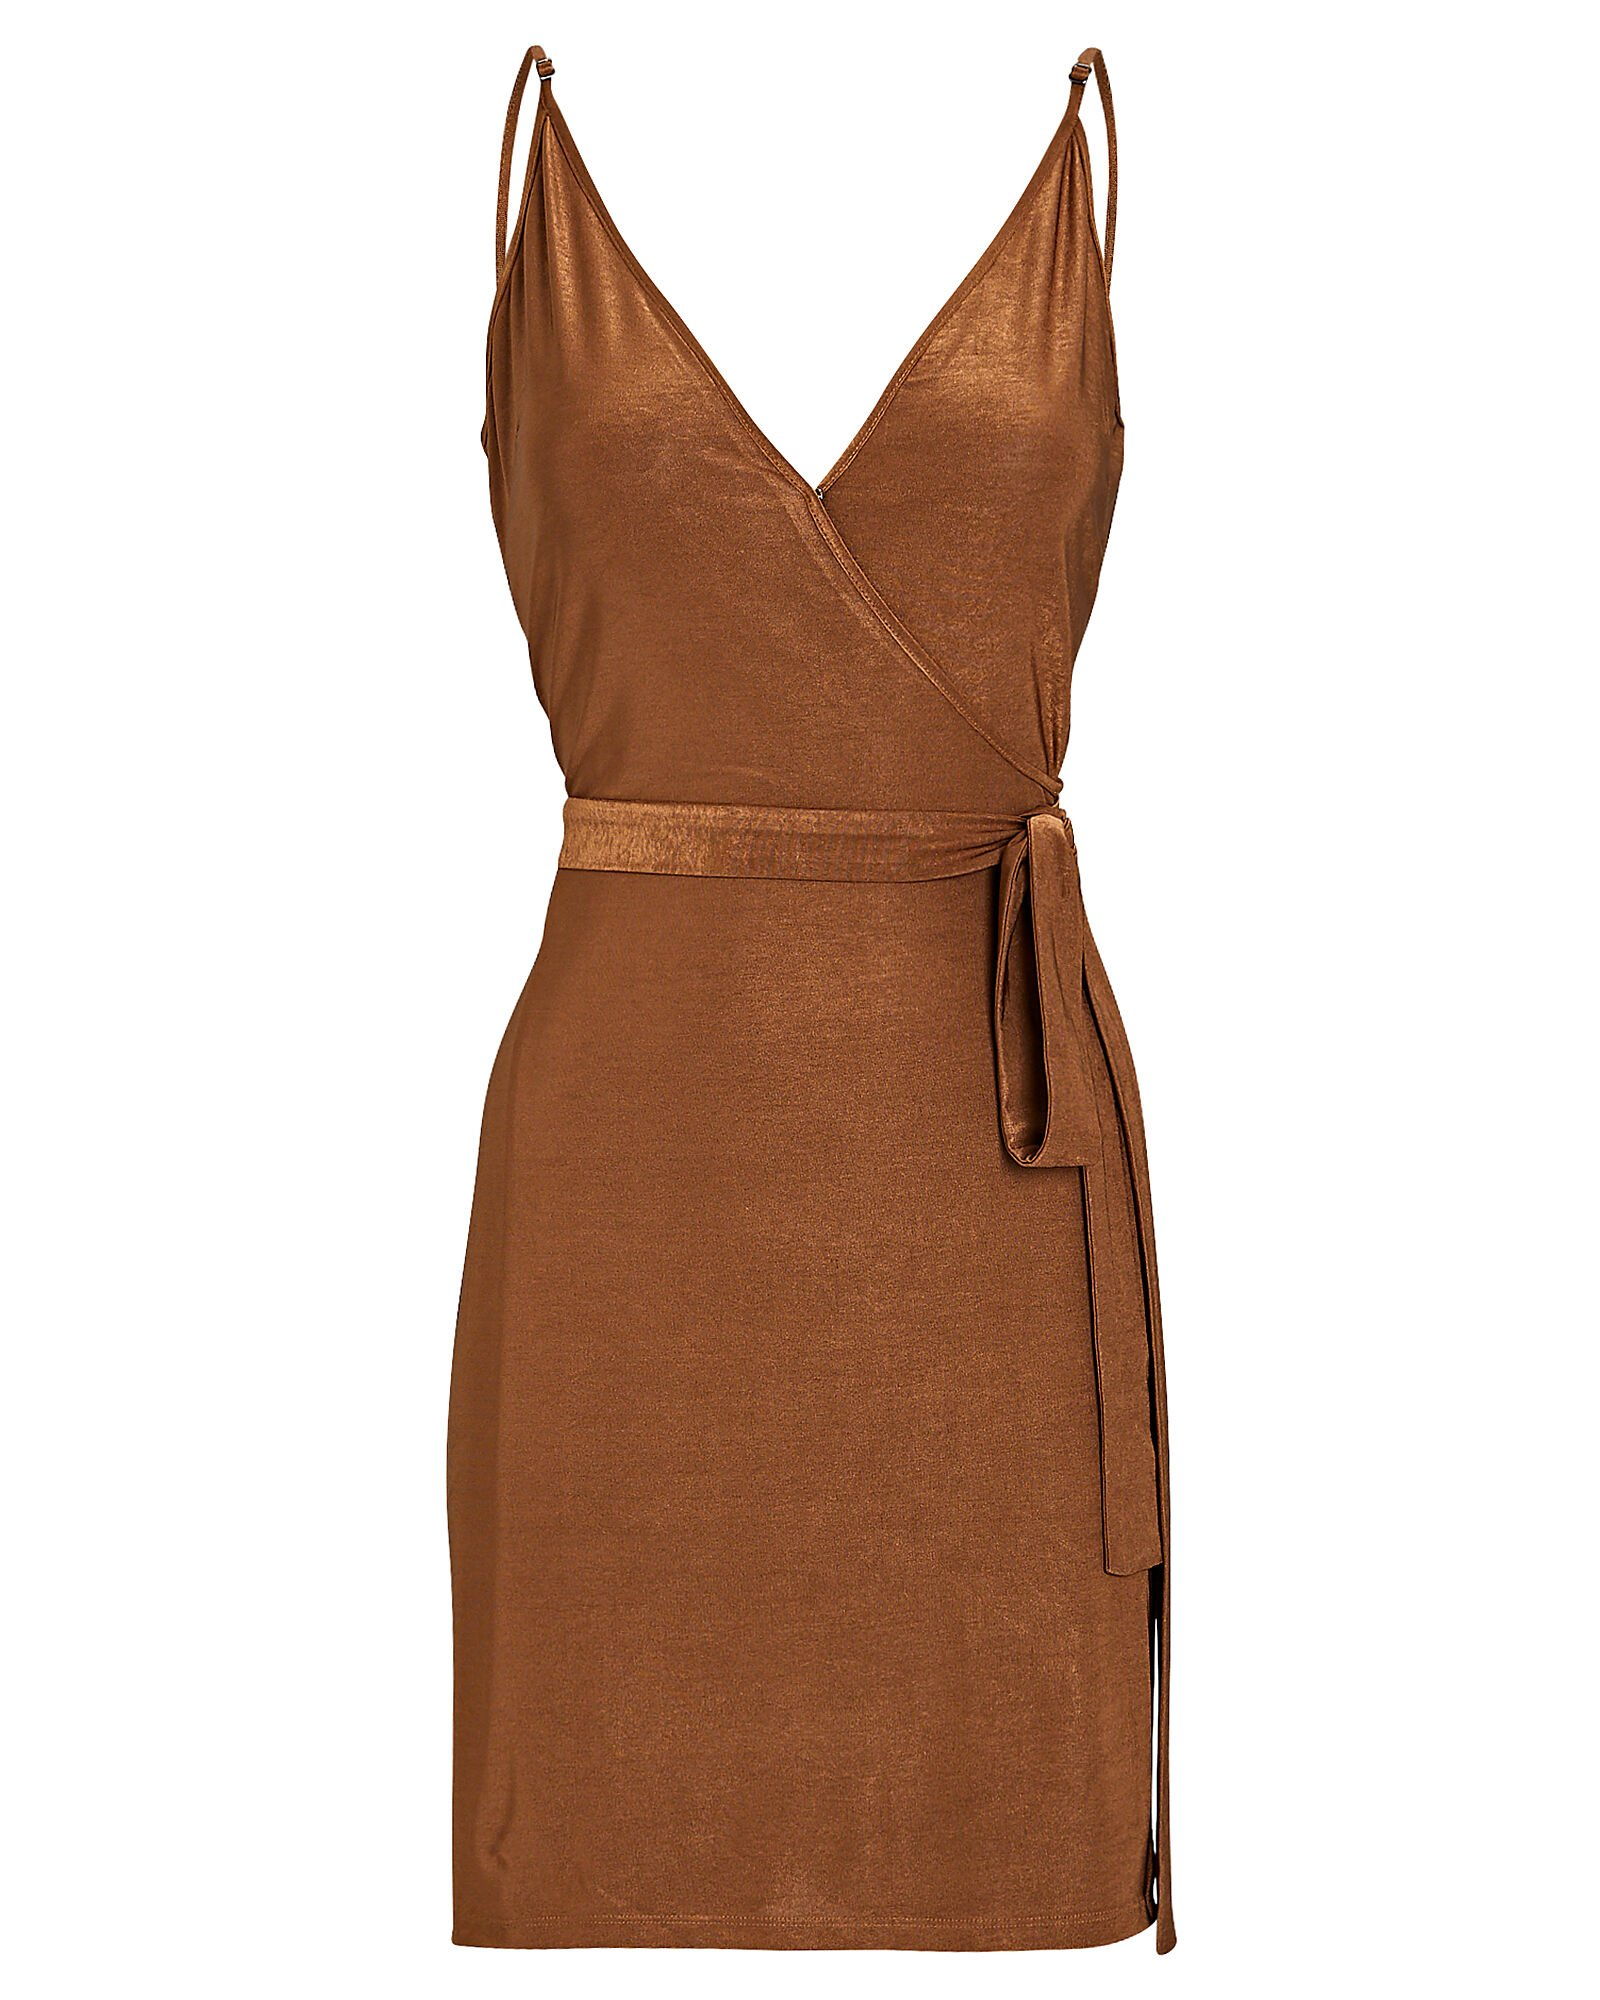 Tate Jersey Wrap Dress, ORANGE, hi-res